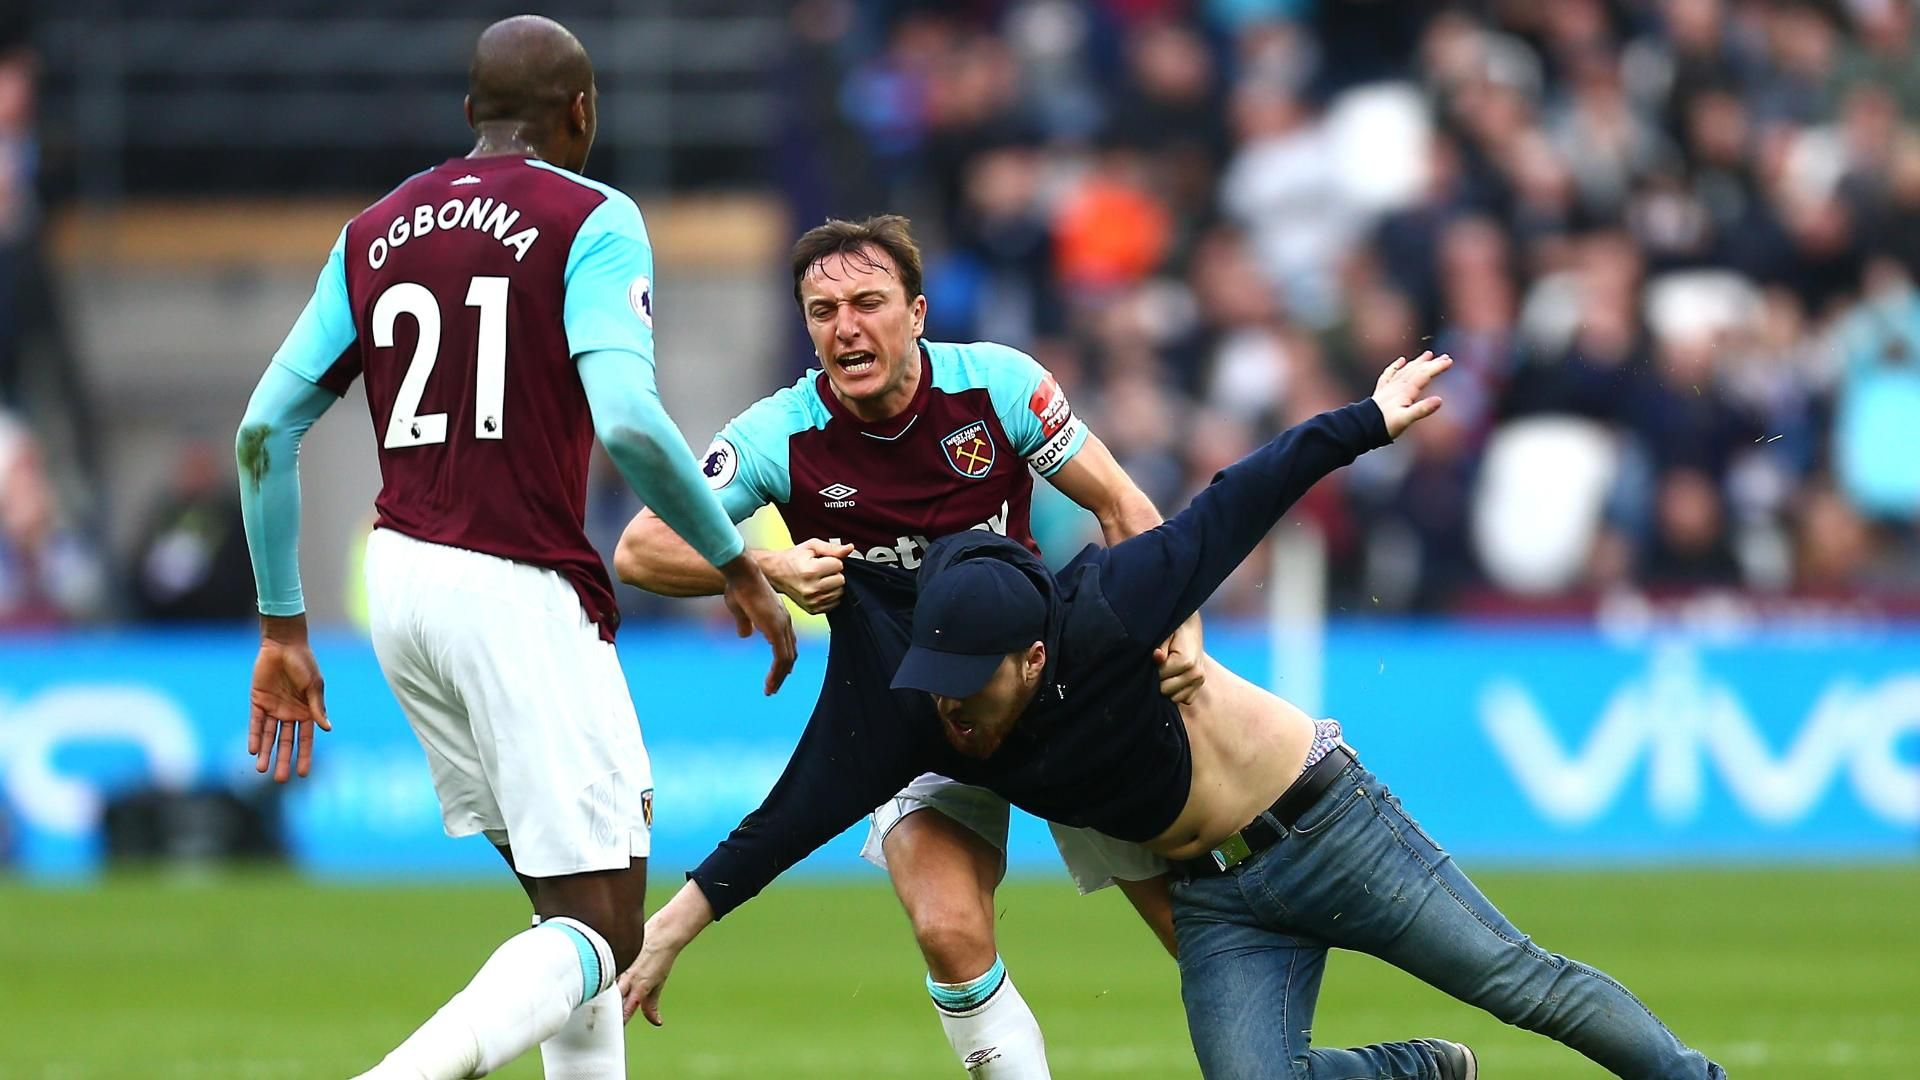 Hammers vice-chairman apologises for unrest